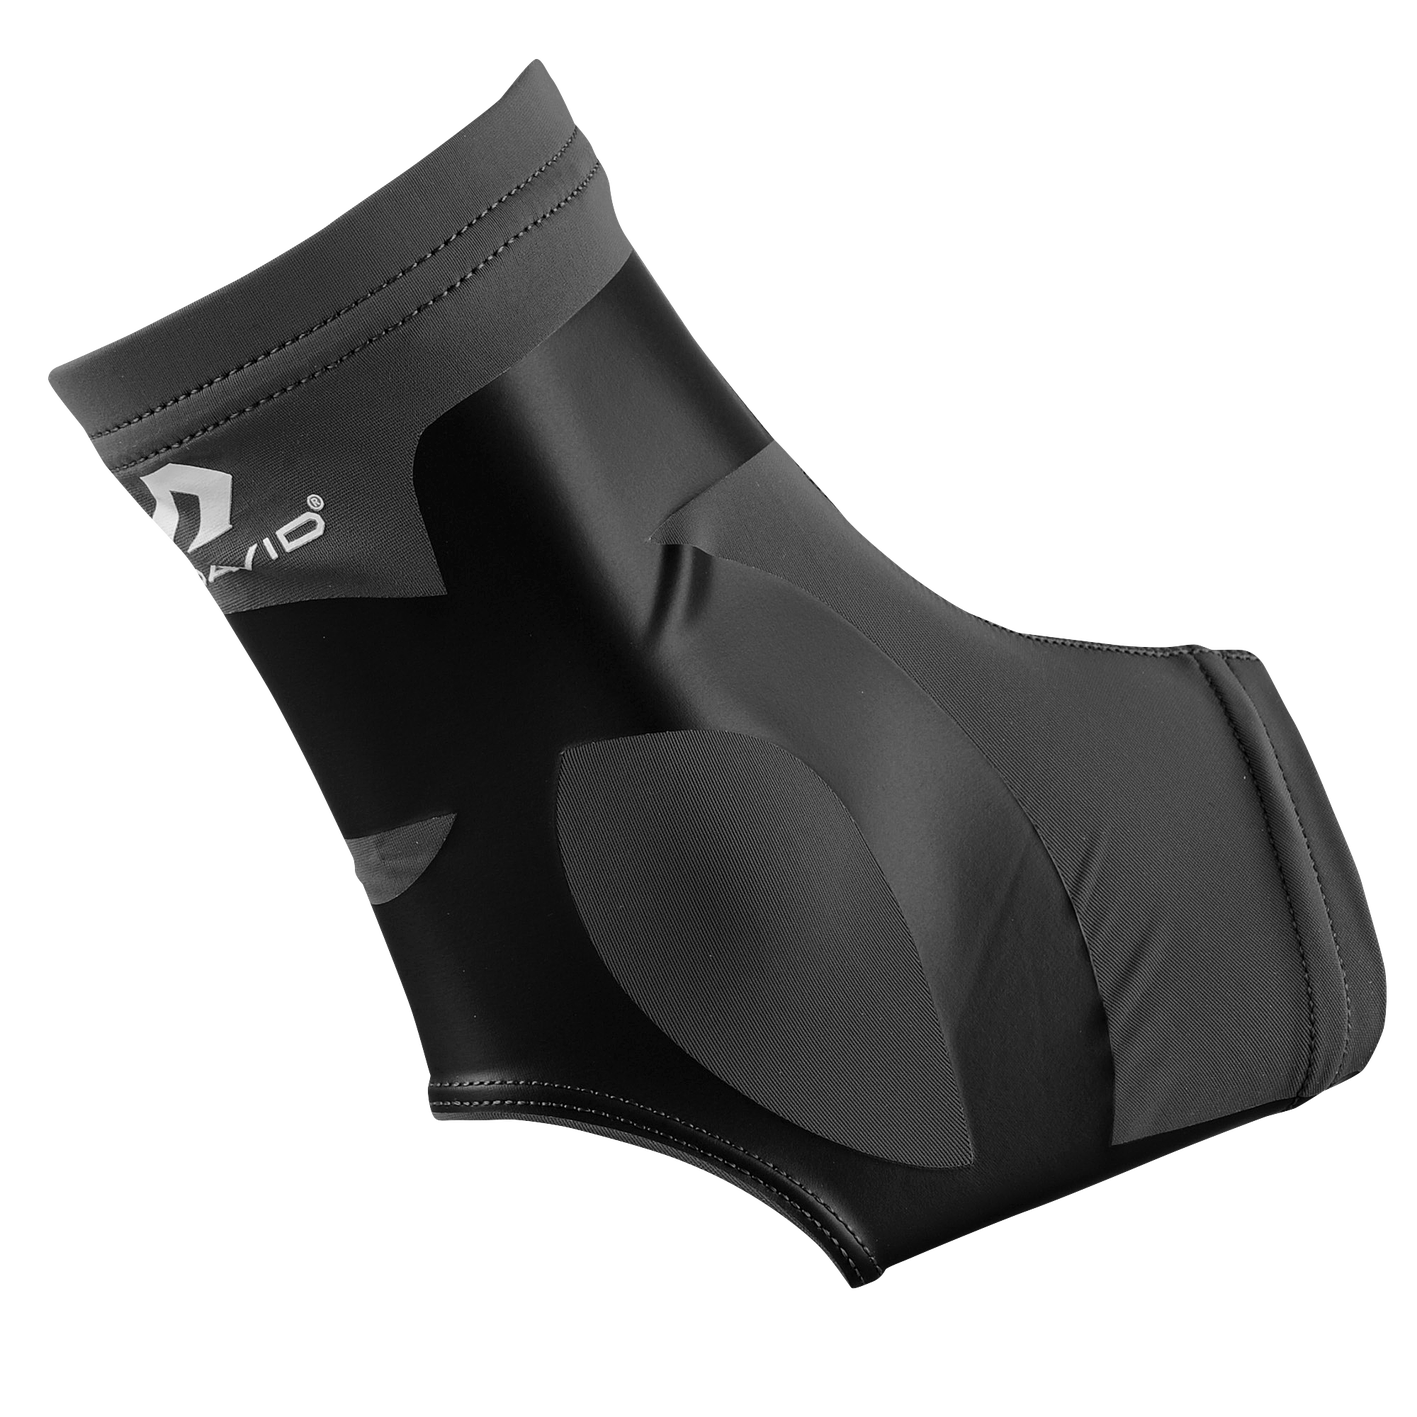 76c3d3911d McDavid Dual Compression Ankle Sleeve - For All Sports - Sport ...